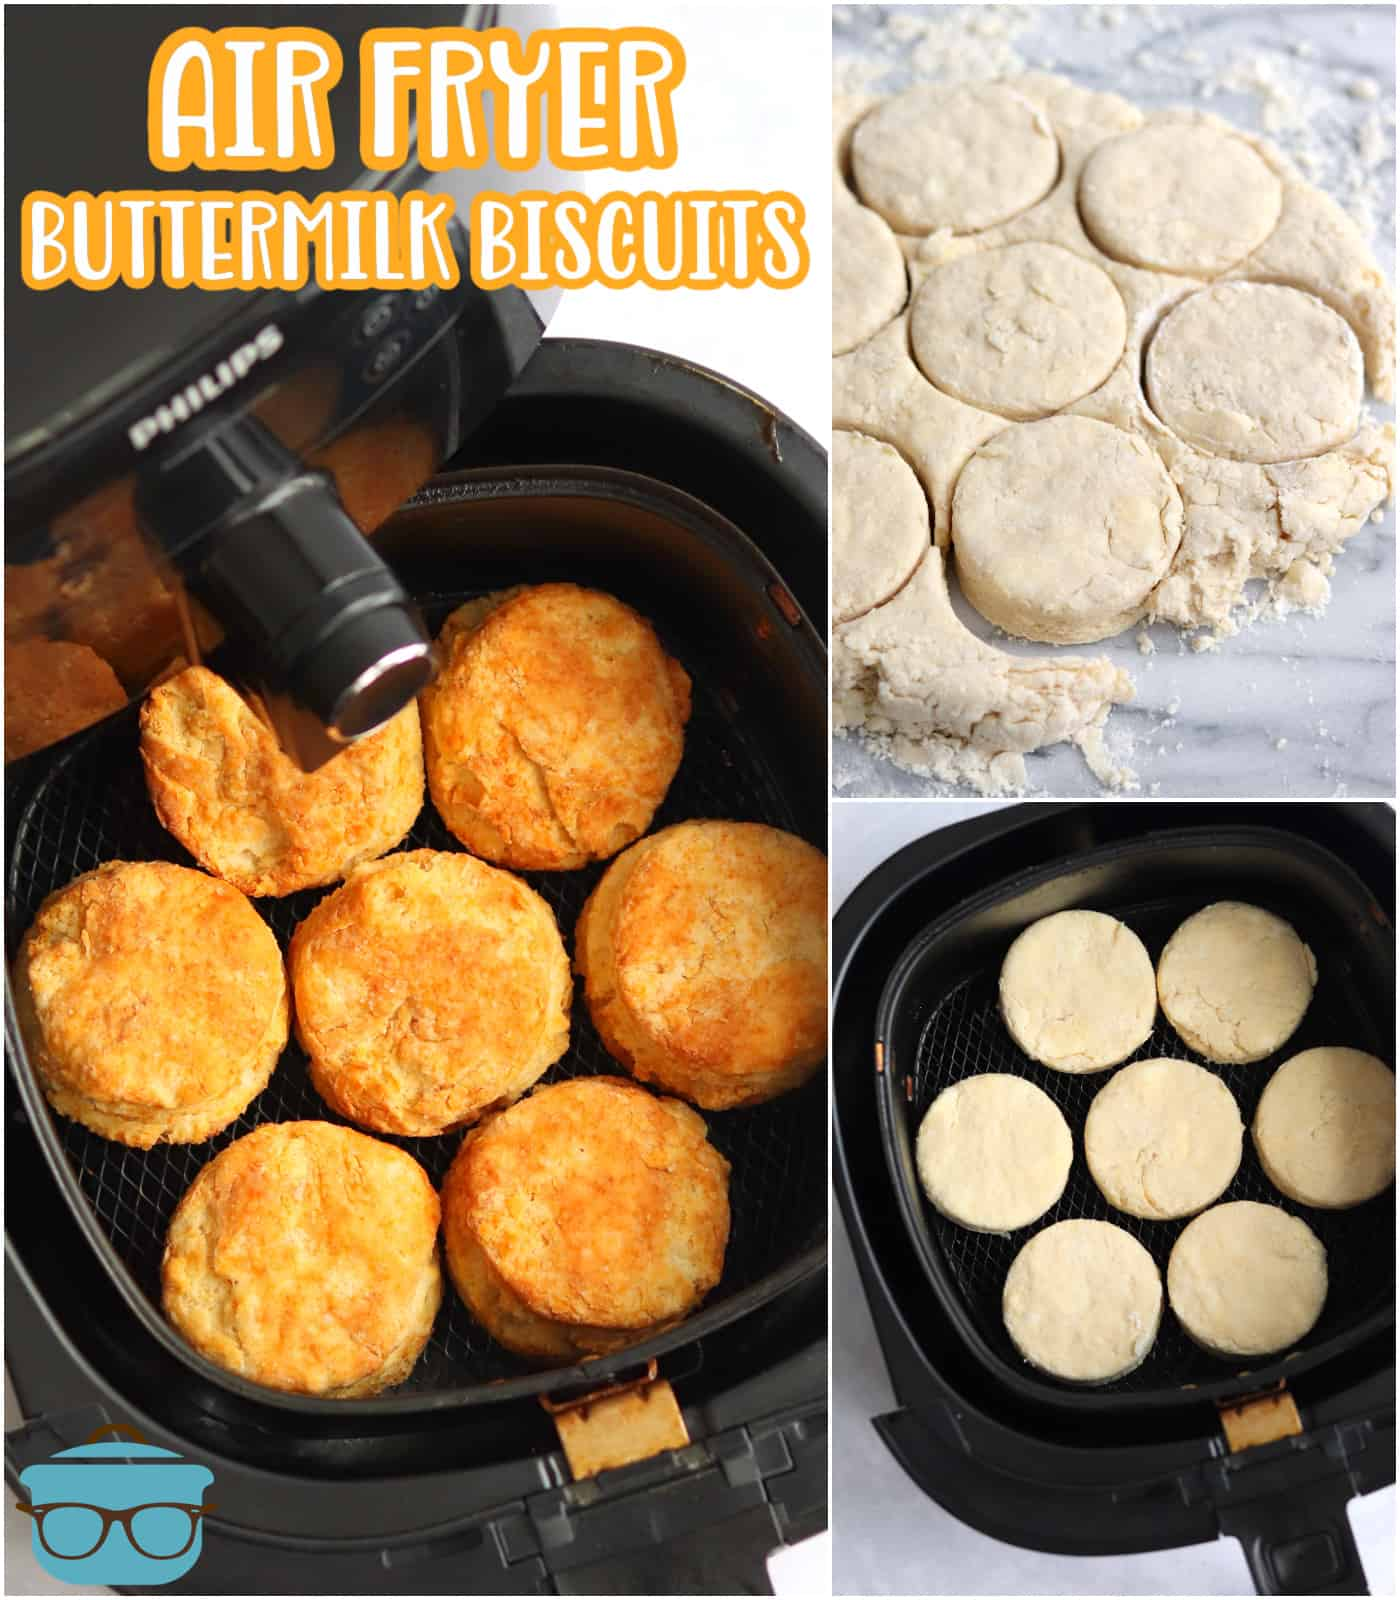 These homemade Air Fryer Buttermilk Biscuits have all the flaky, buttery flavor of baked biscuits but they are made in an air fryer!